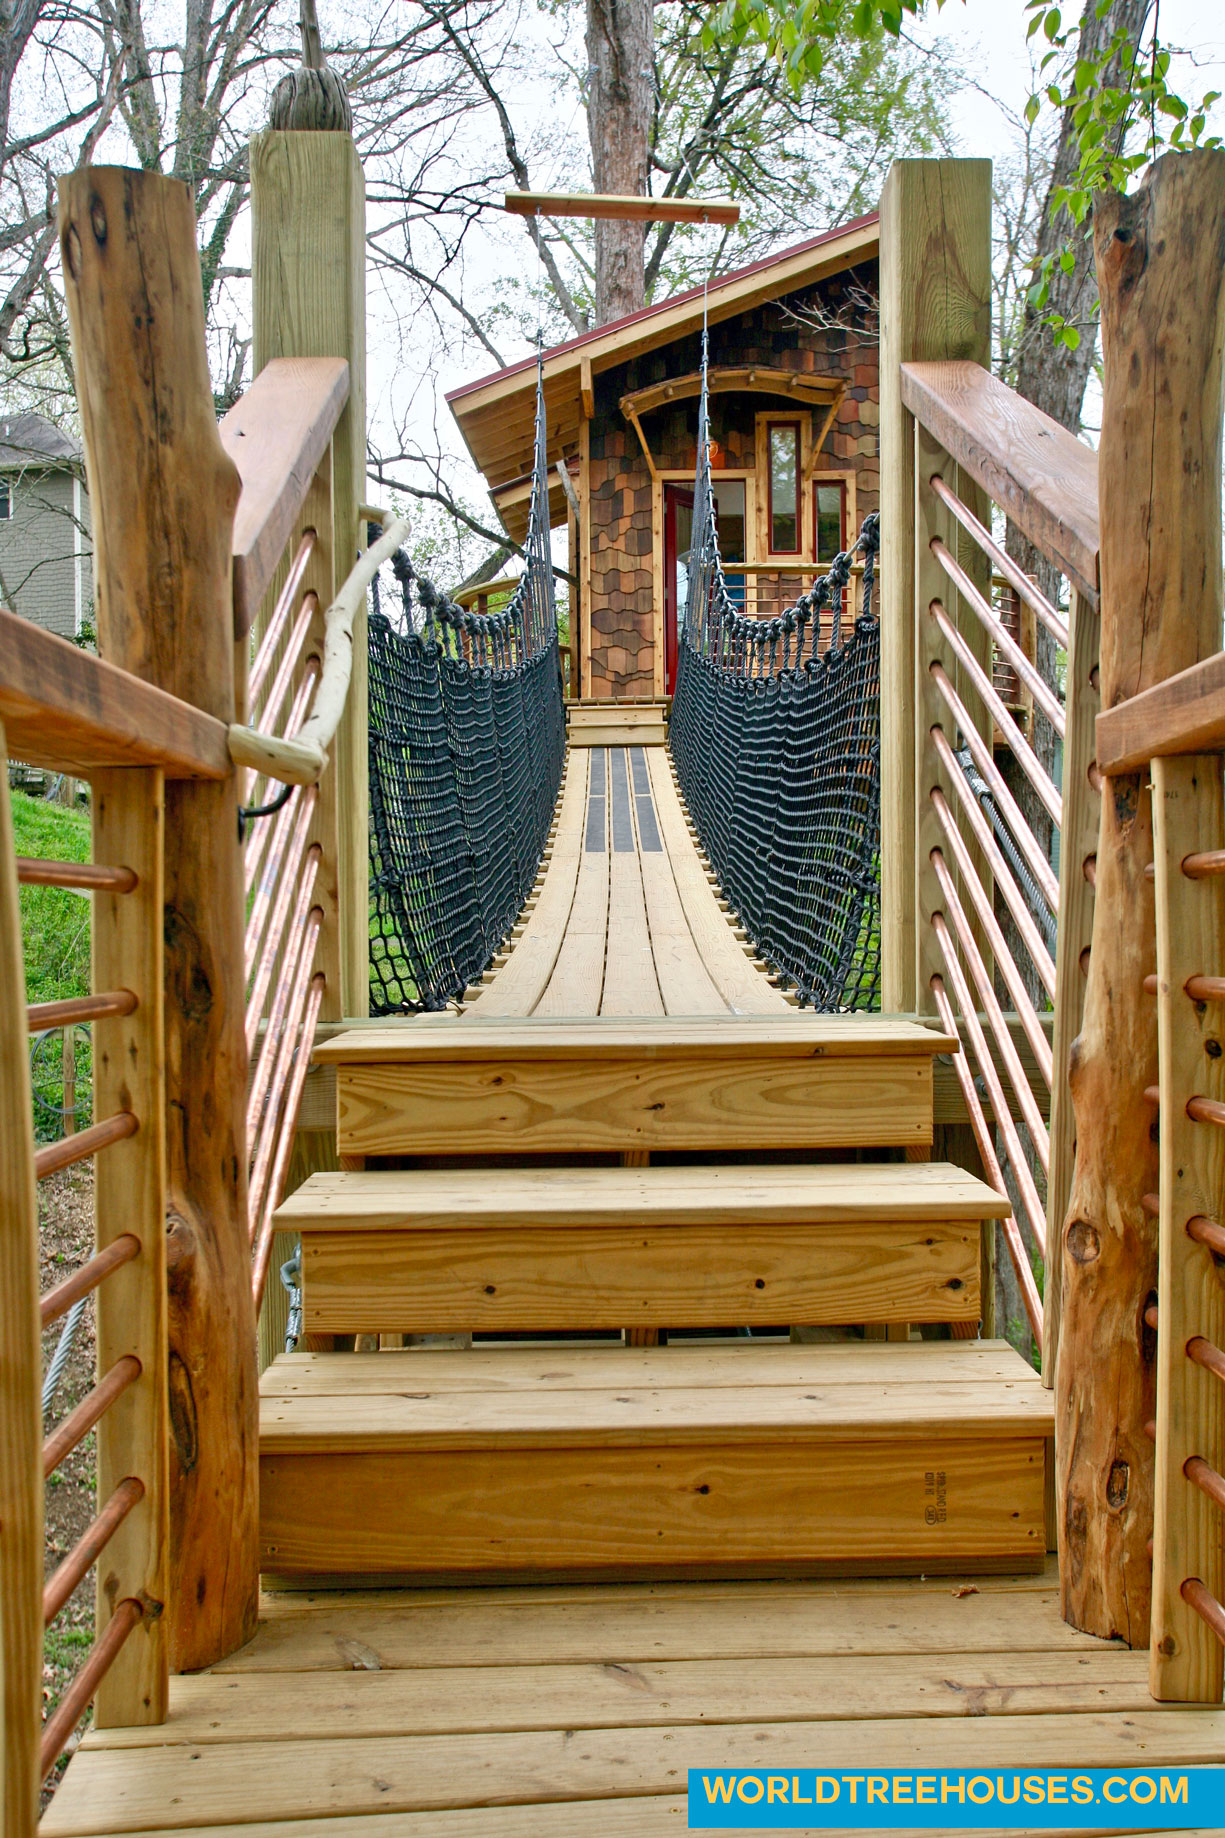 world treehouses bridge 1 asheville nc